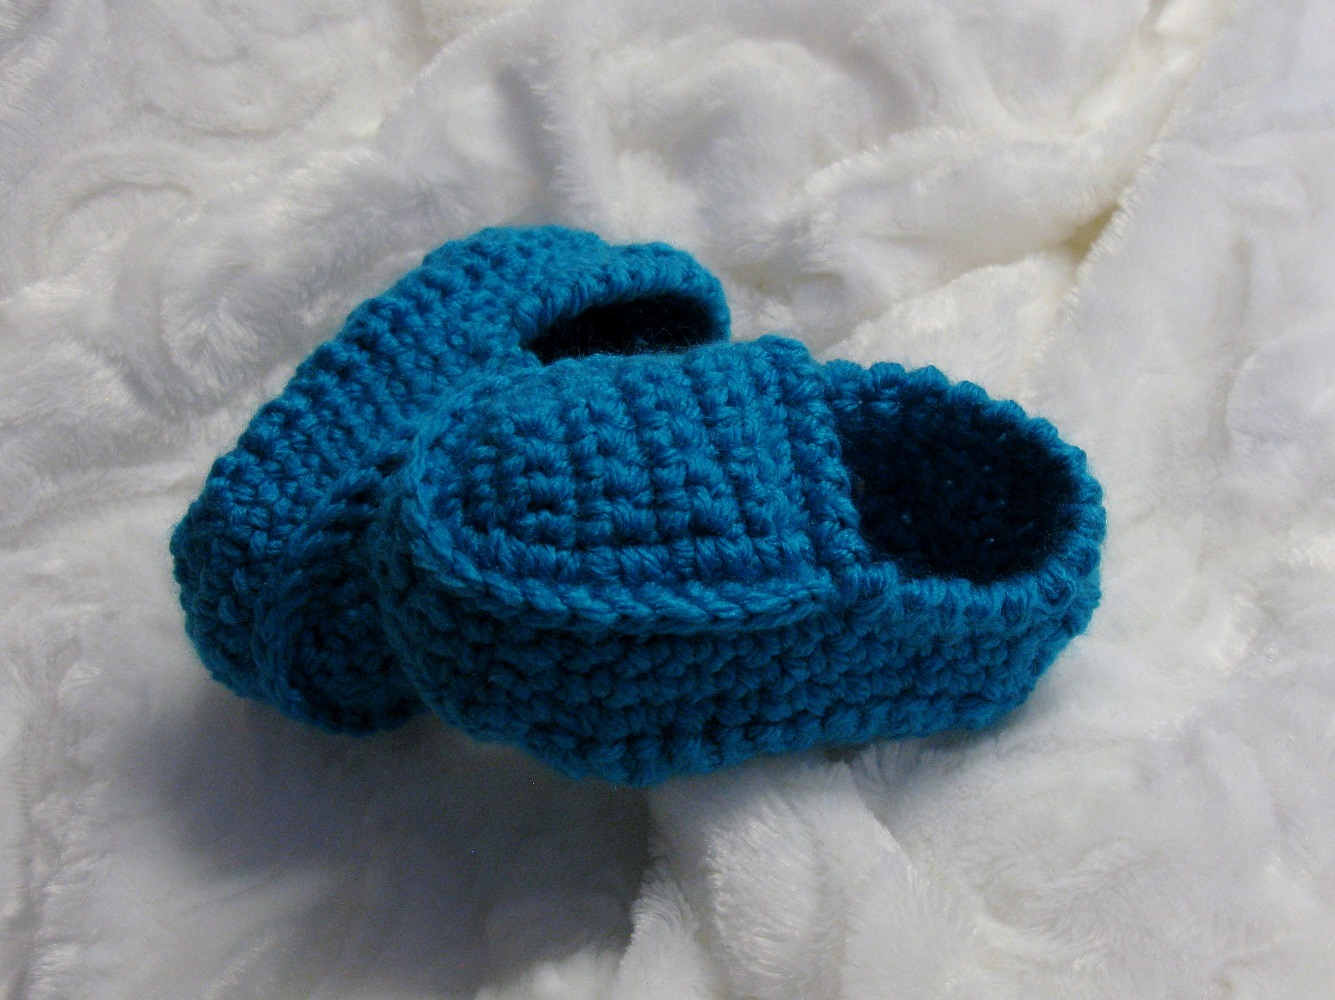 Chaussons de style loafers pour bébé